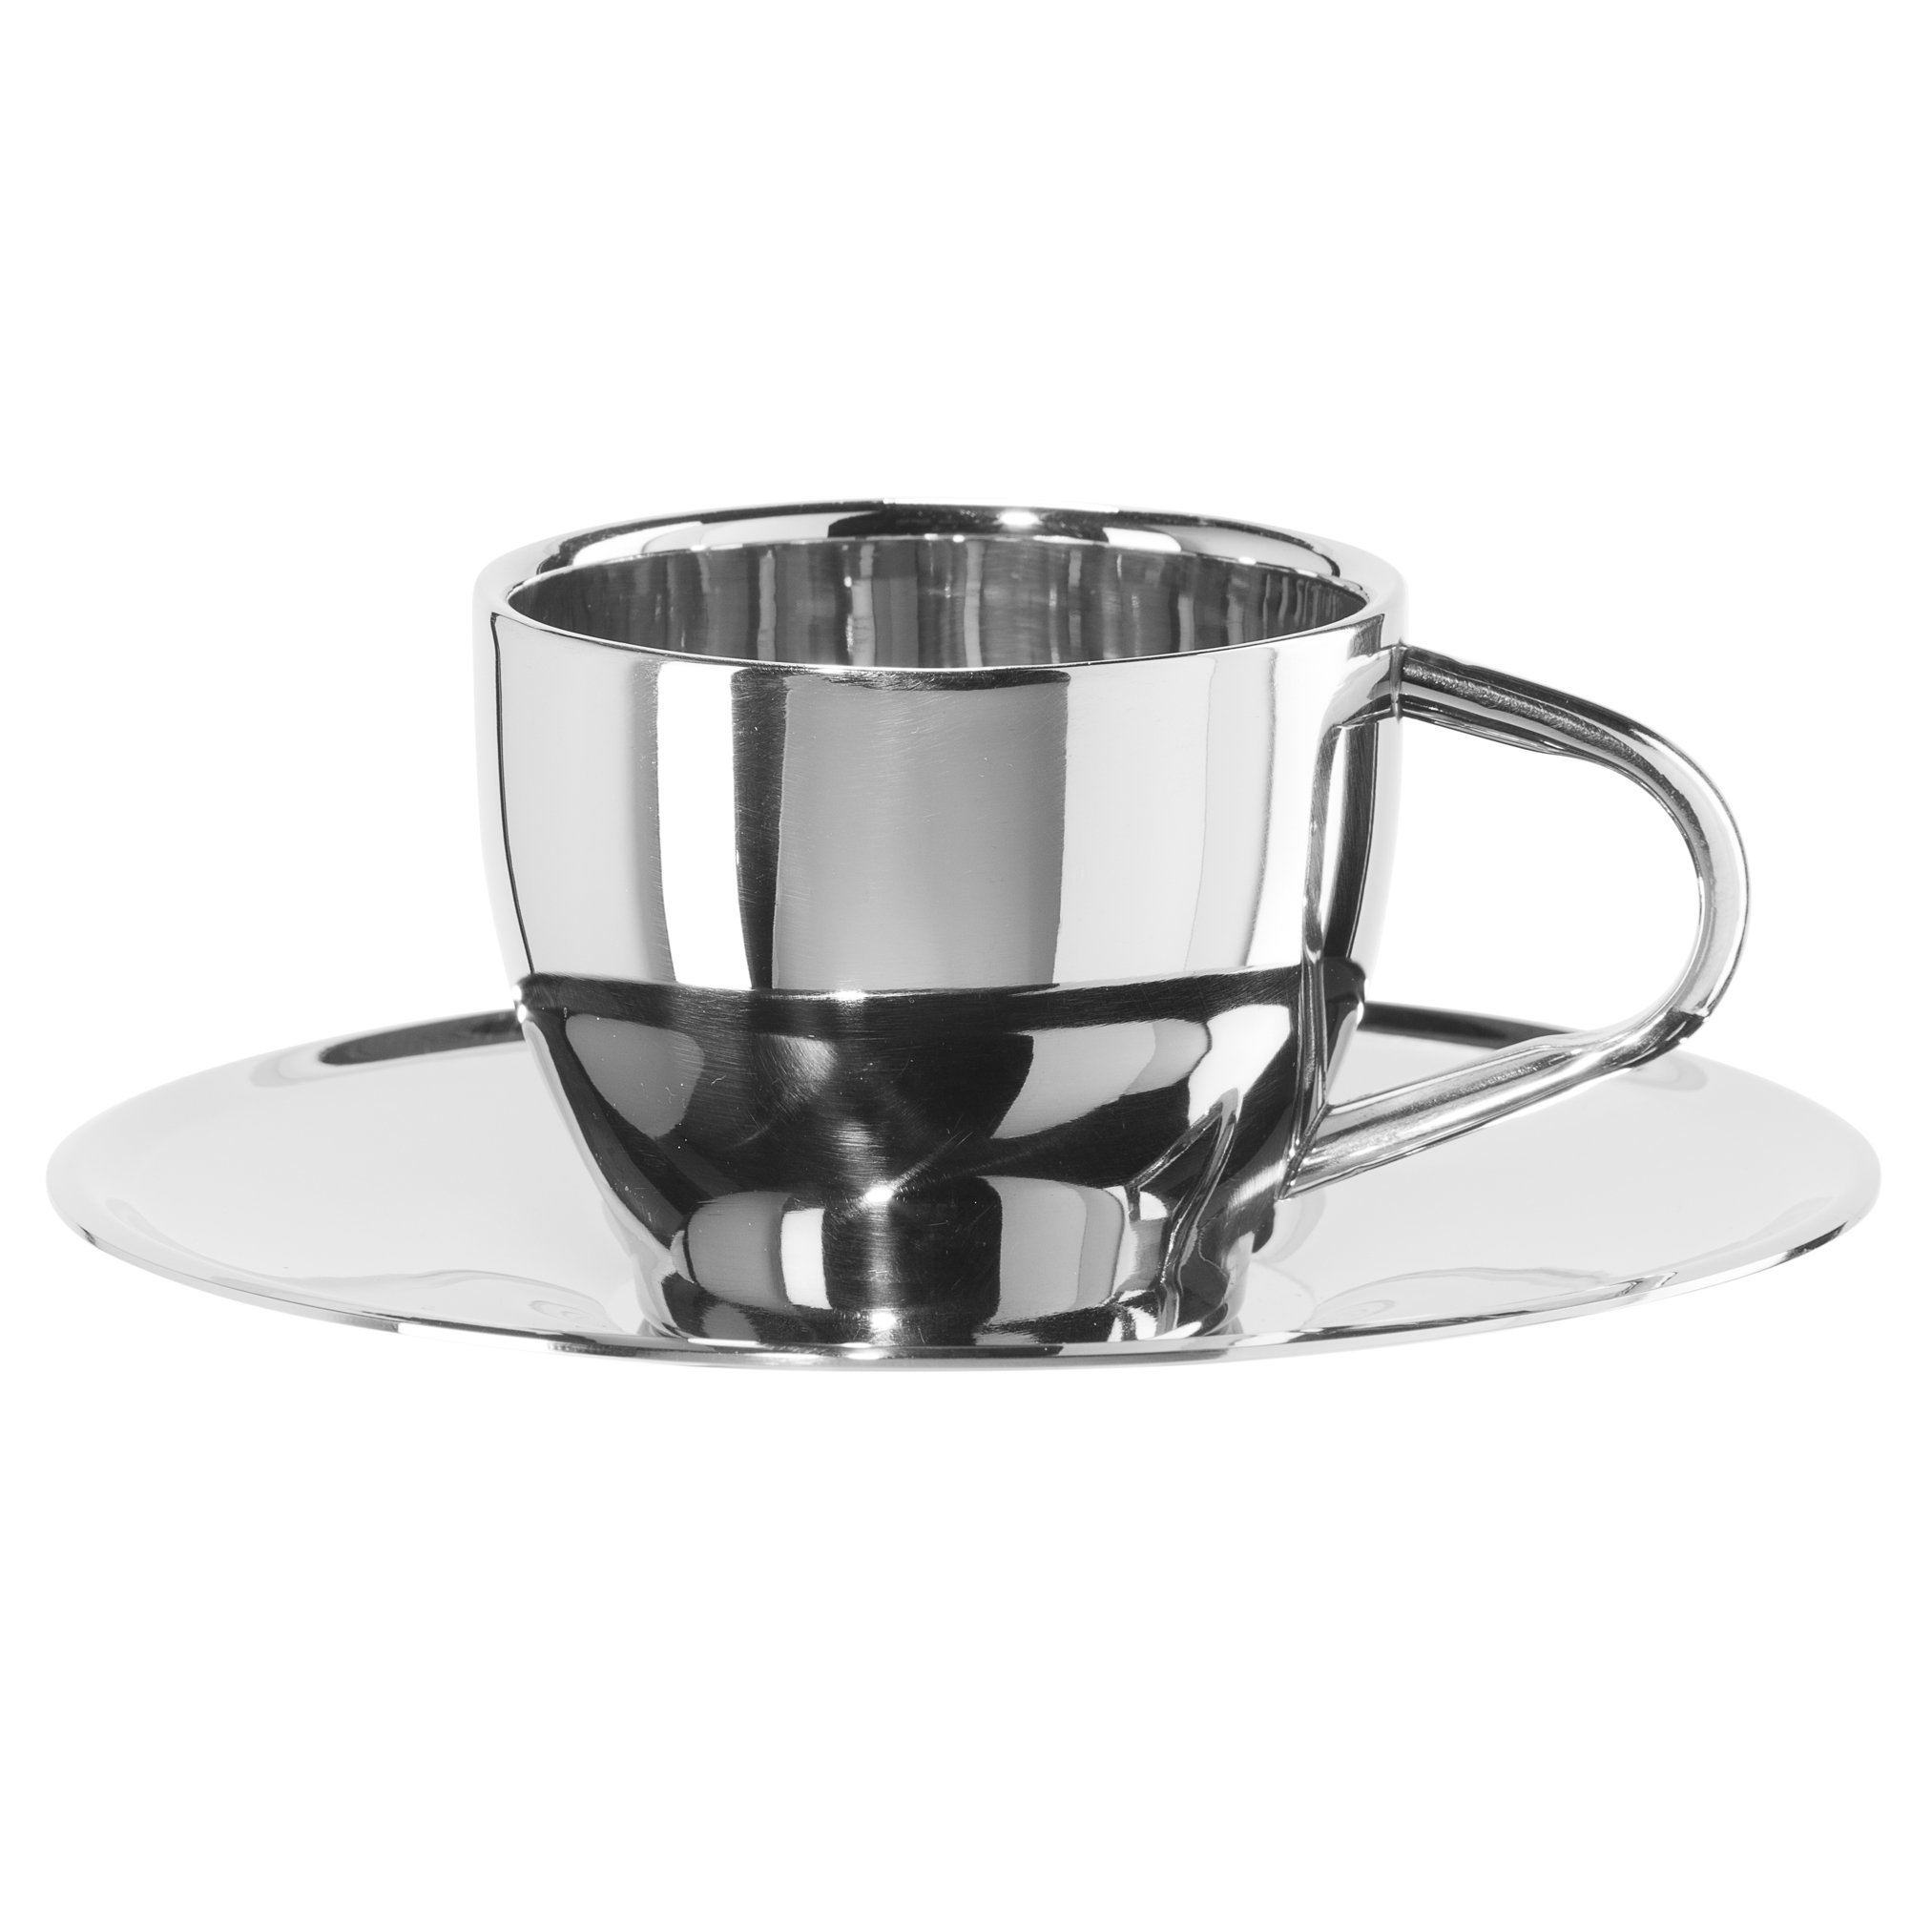 Oggi 6593.0 Espresso Cup & Saucer Double Wall (4 Oz), Stainless